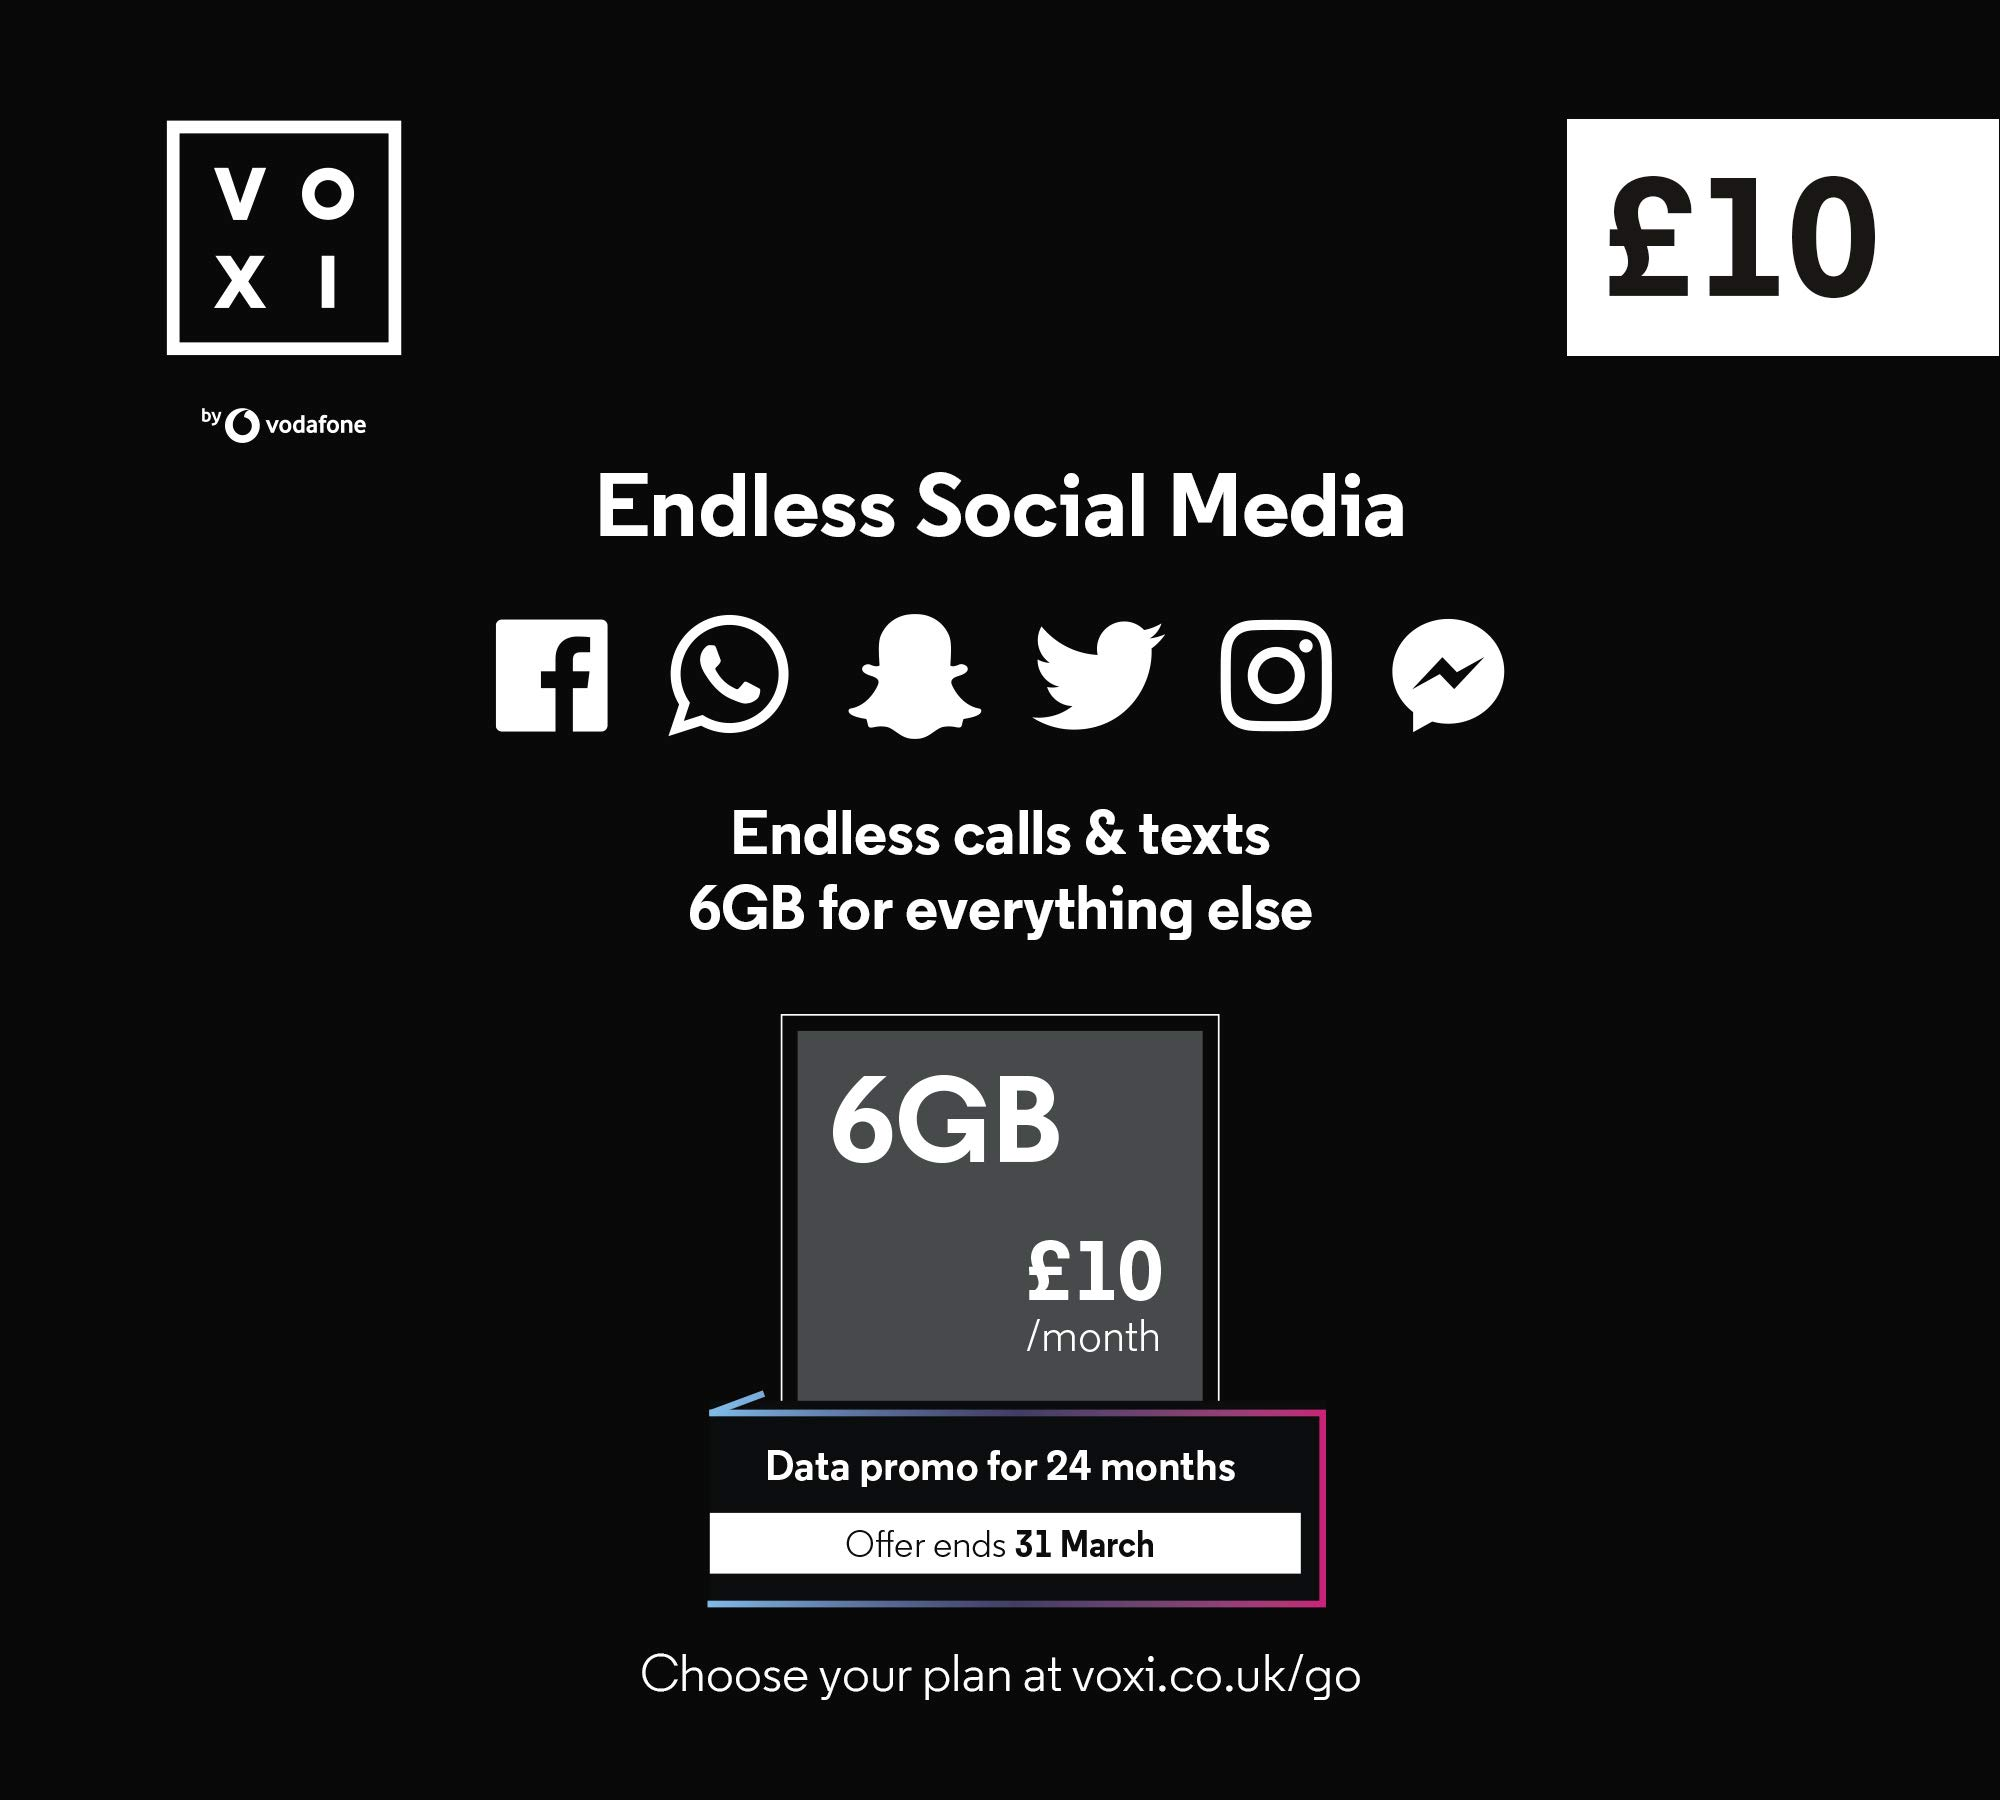 Vodafone VOXI SIM Card Endless Social Data, Calls, Texts Roaming (VOXI is The Mobile Network Under 30s): Amazon.es: Electrónica